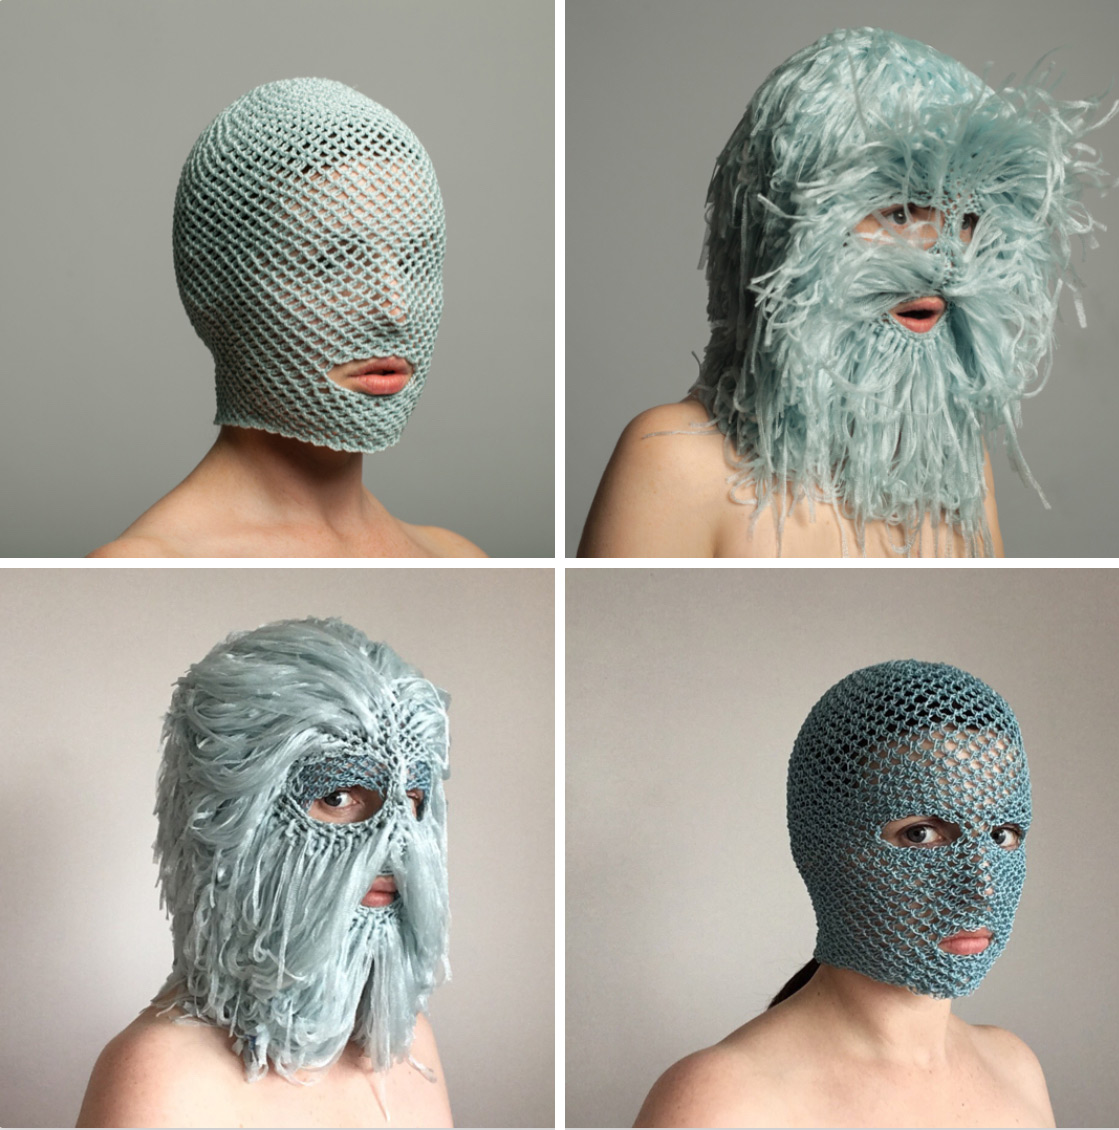 Extravagant Masks by threadstories Offer Cultural Commentary on Selfhood and Social Media